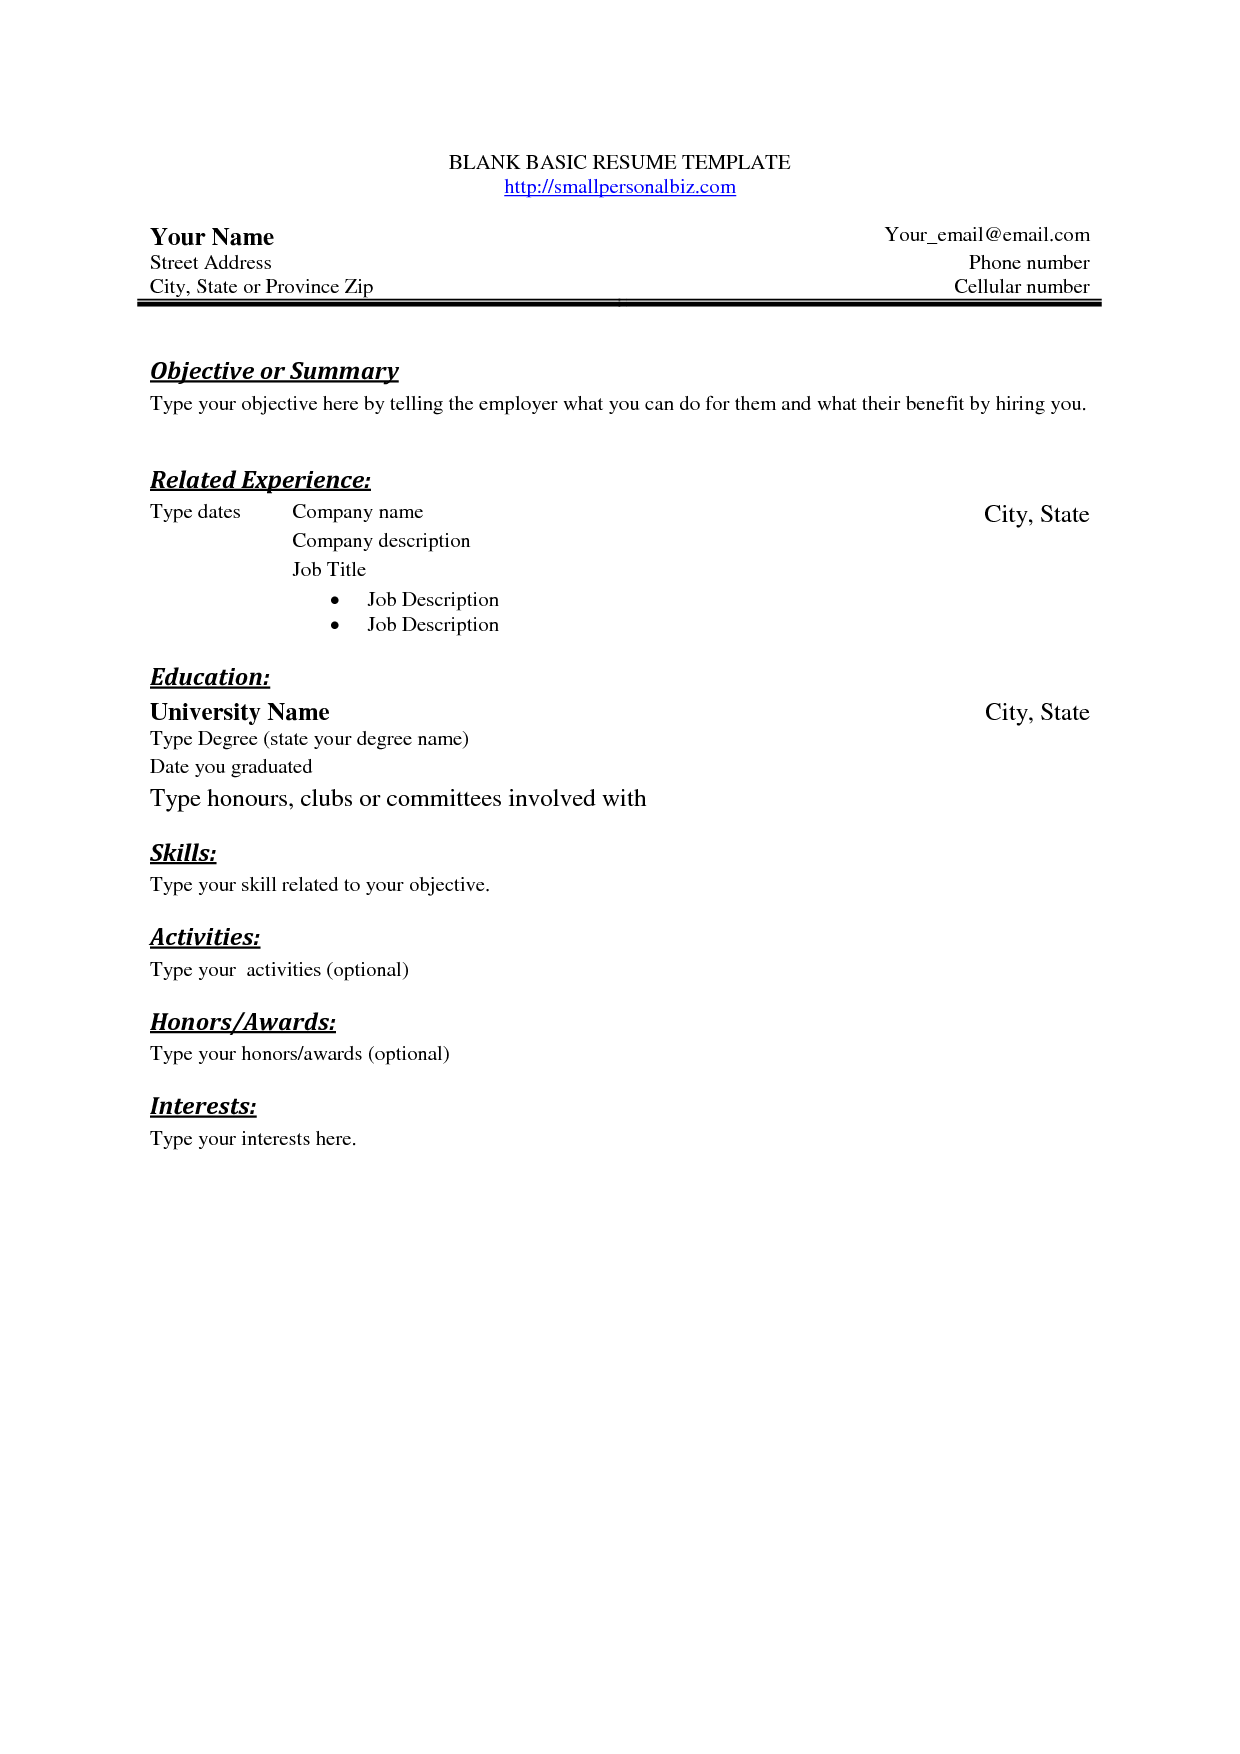 Career Objective On Resume Template Stylist And Luxury Simple Resume Layout 10 Free Basic Blank Resume